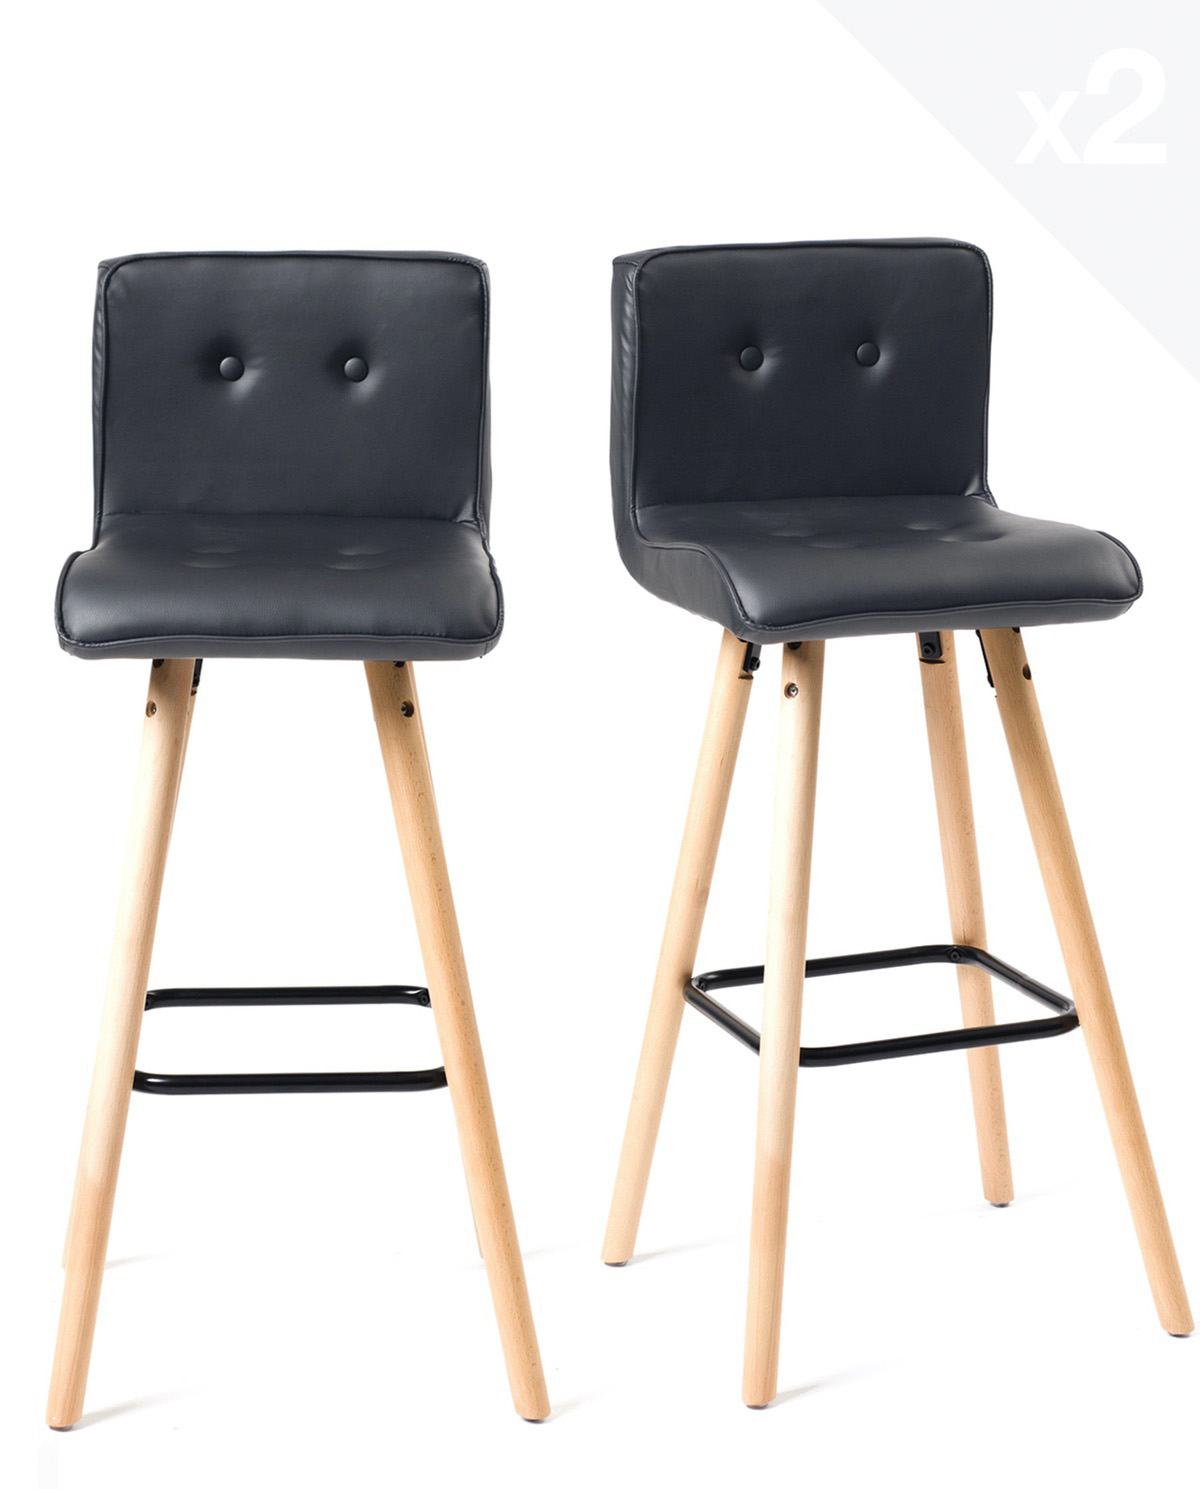 Chaise De Bar Bois Confort Et Large Assise Siwa Lot De 2 Kayelles Com